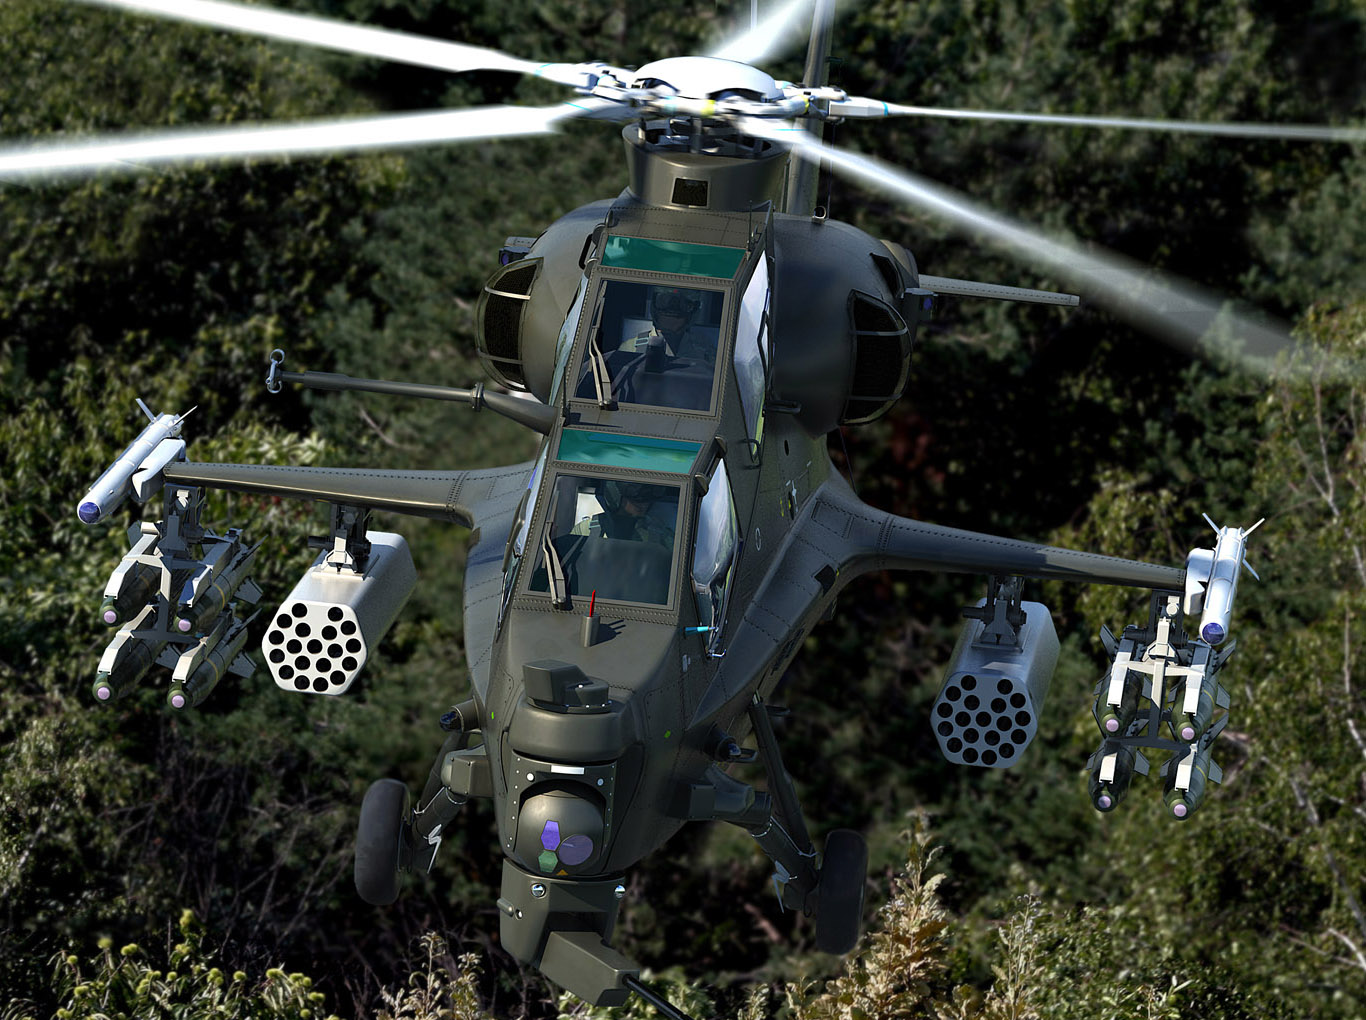 chine Cgi+kit+tool+armed+Chinese+Z-10+Attack+Helicopter+gunship+PLA+Peoples+Liberation+Army+Air+Force+export+pakitan+missile+hj10+atgm+rocket+(1)